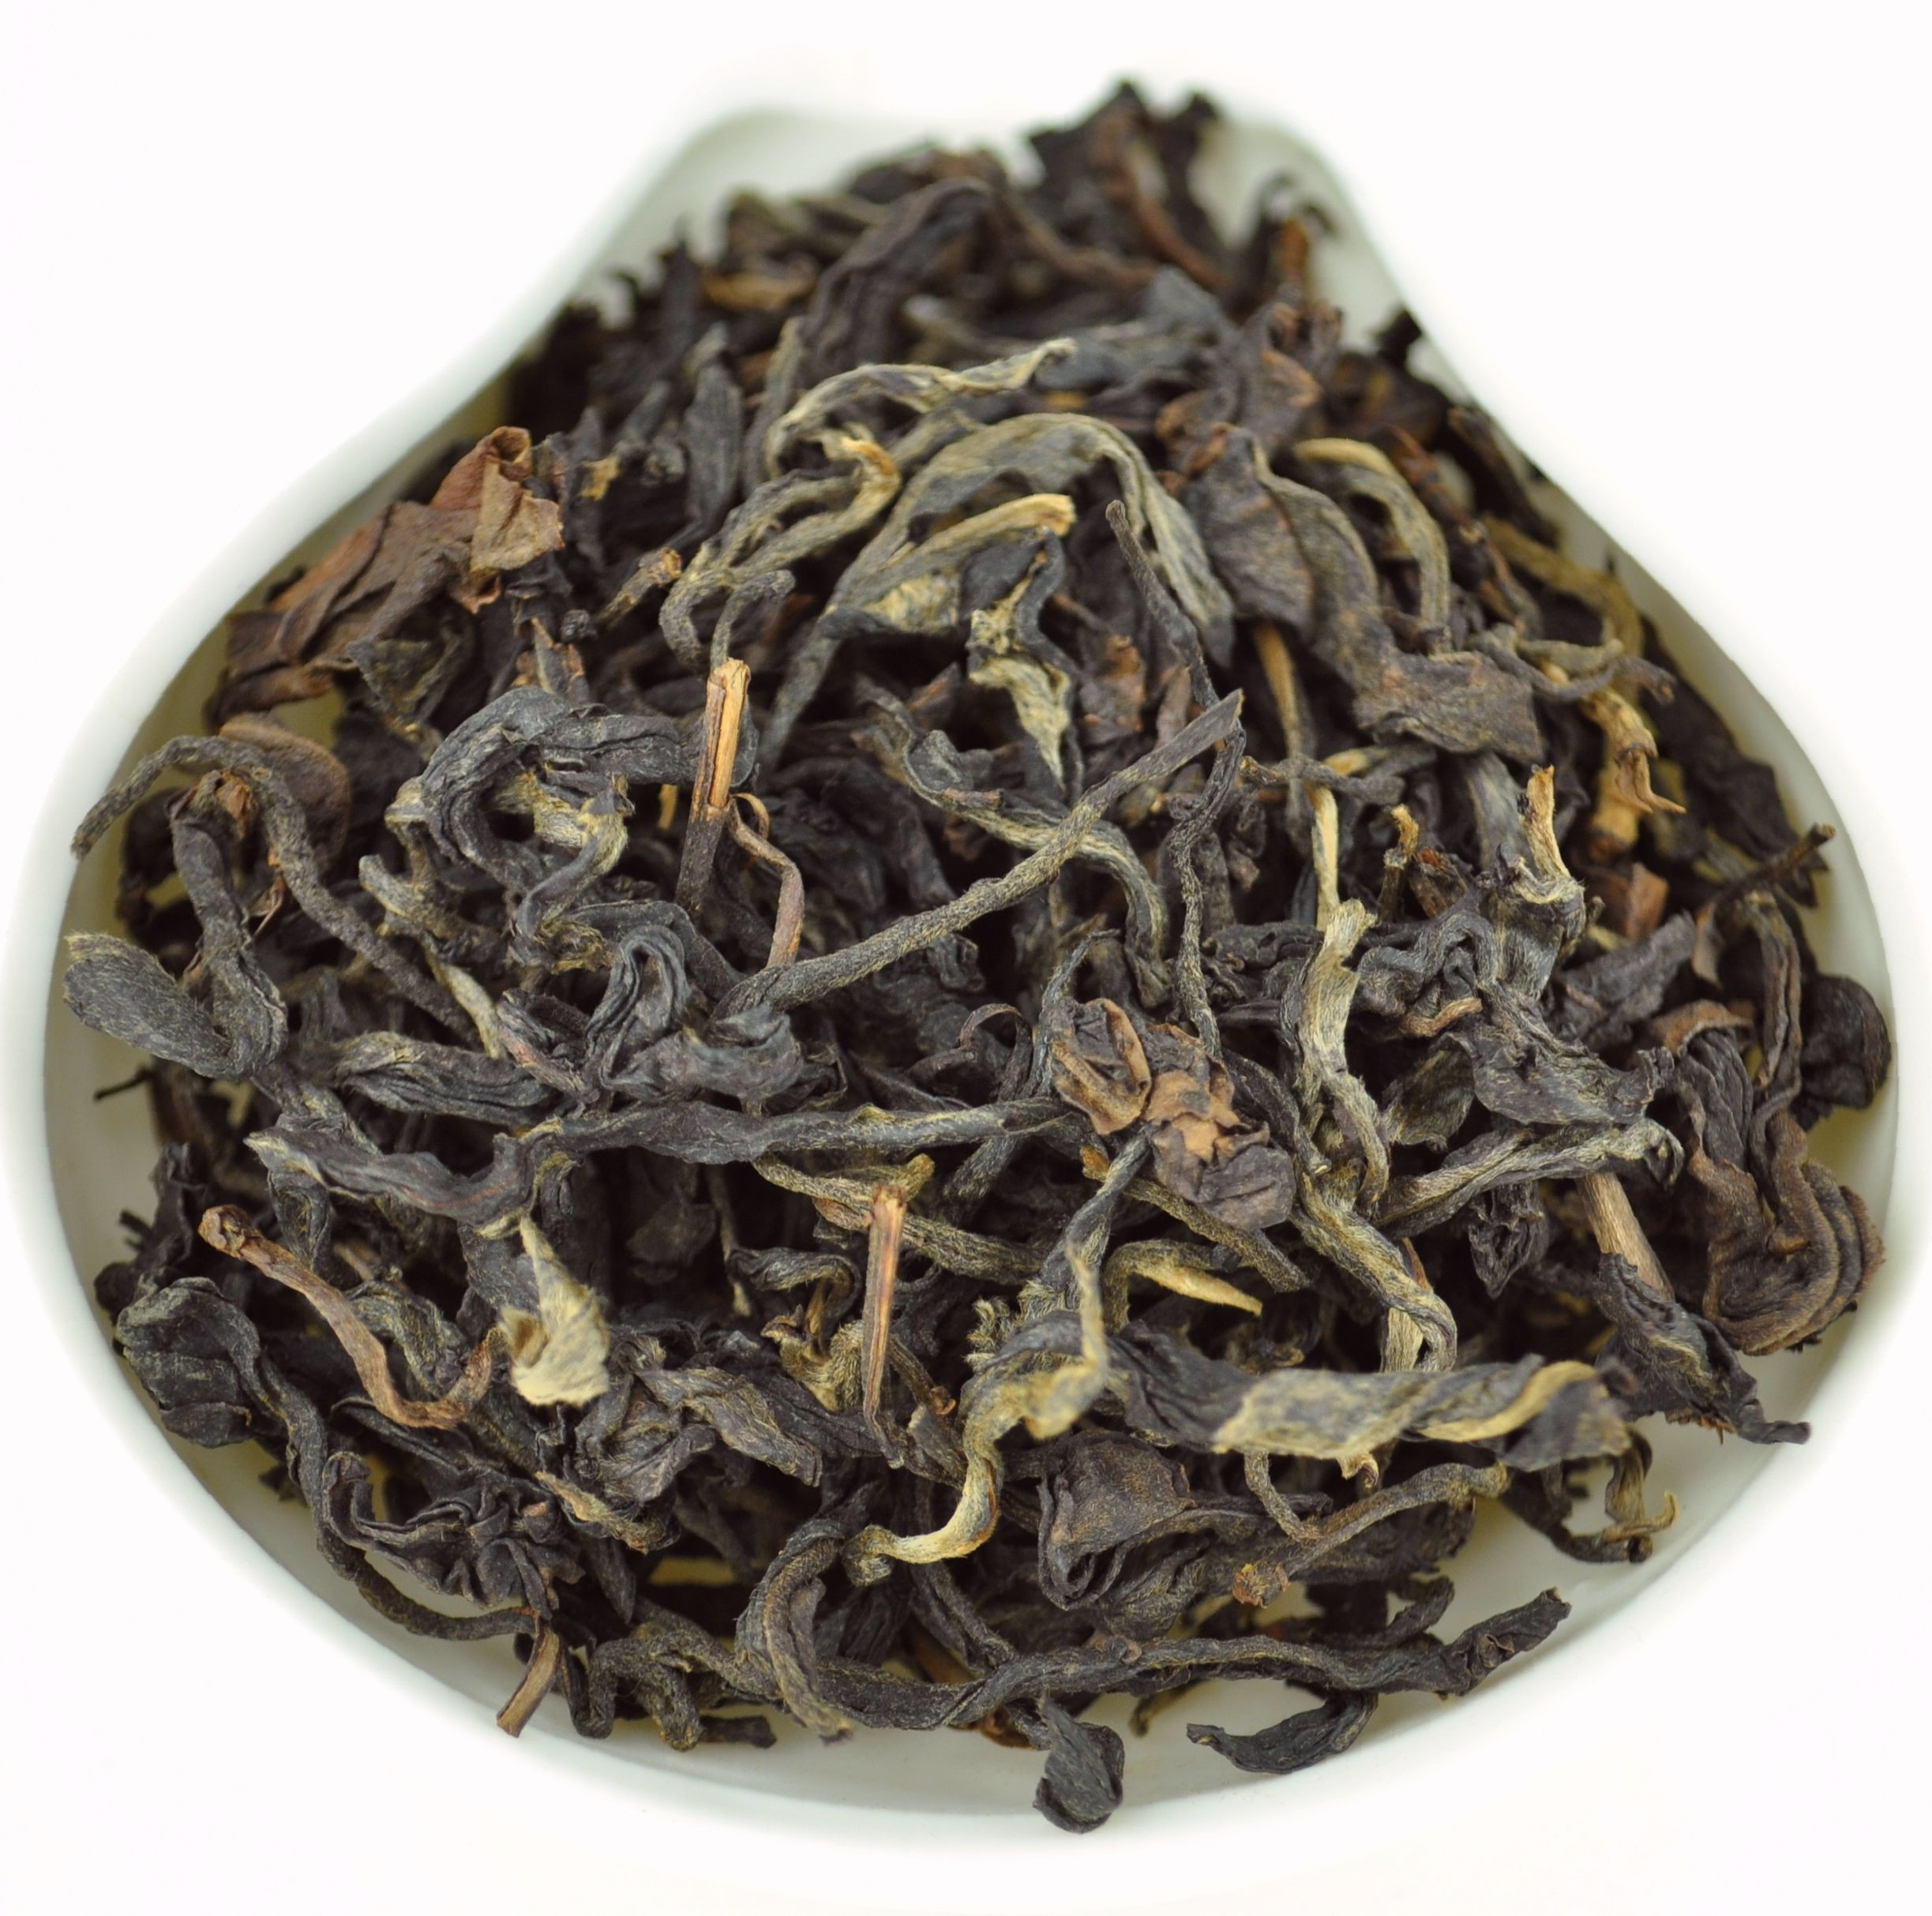 Yi Wu Mountain Wild Arbor Assamica Black Tea * Autumn 2015